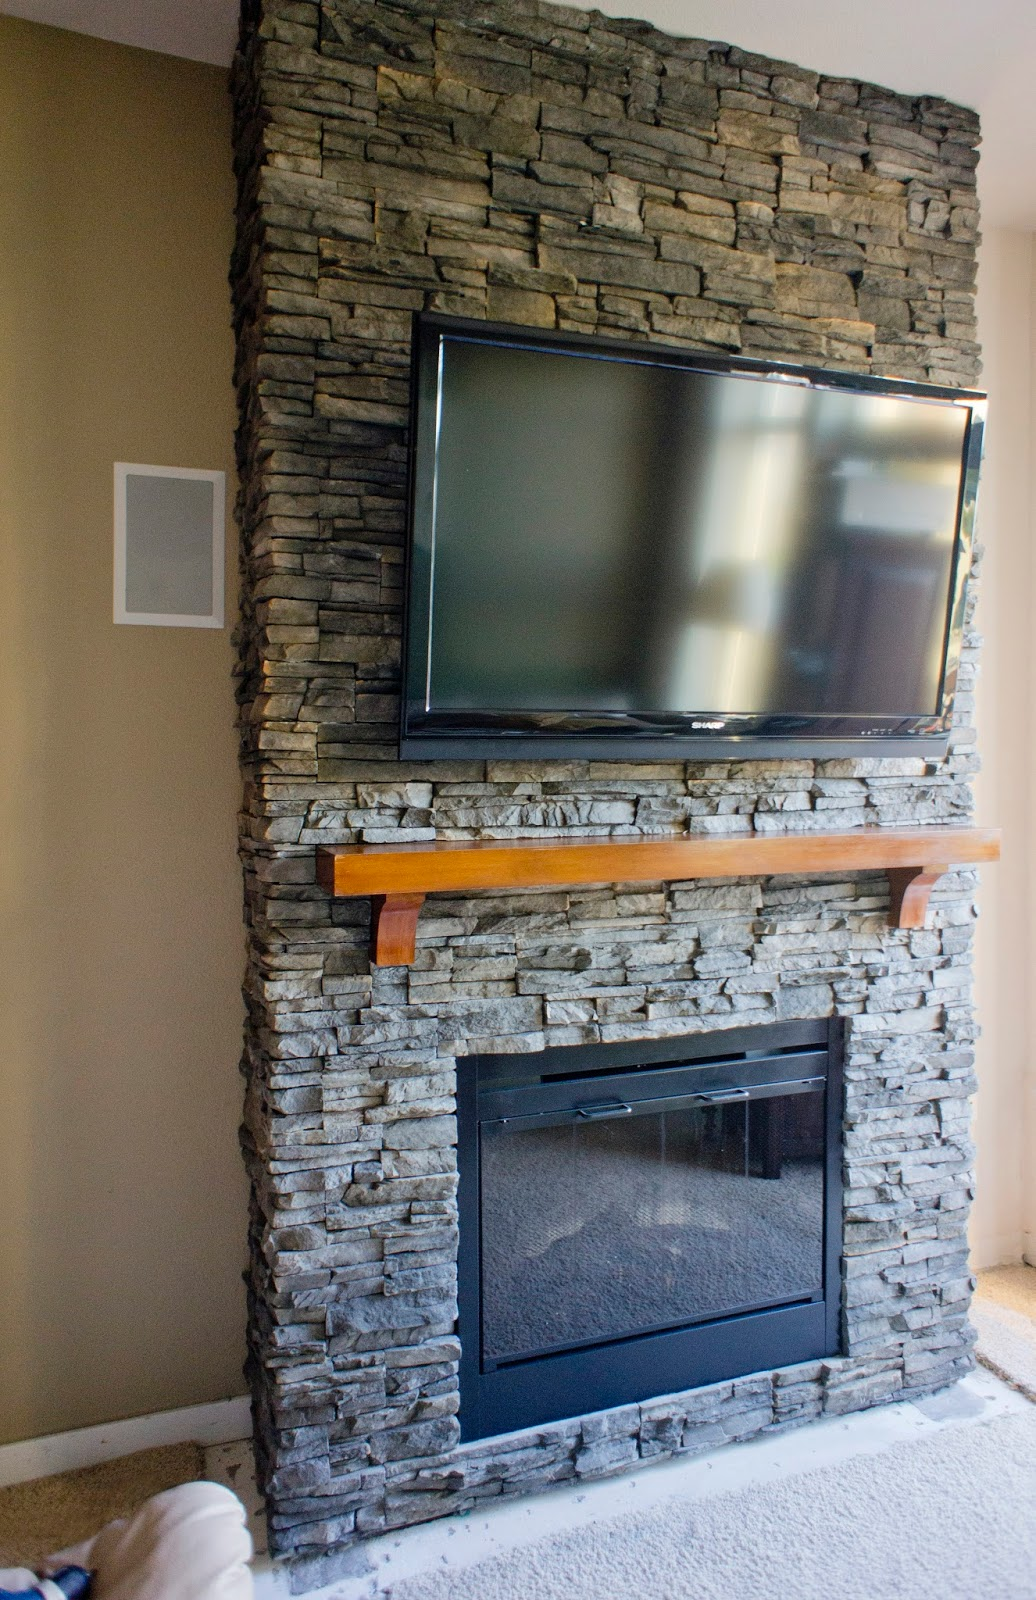 Installing Cultured Stone Fireplace How To Install Stacked Stone On Brick Fireplace Fireplace Design